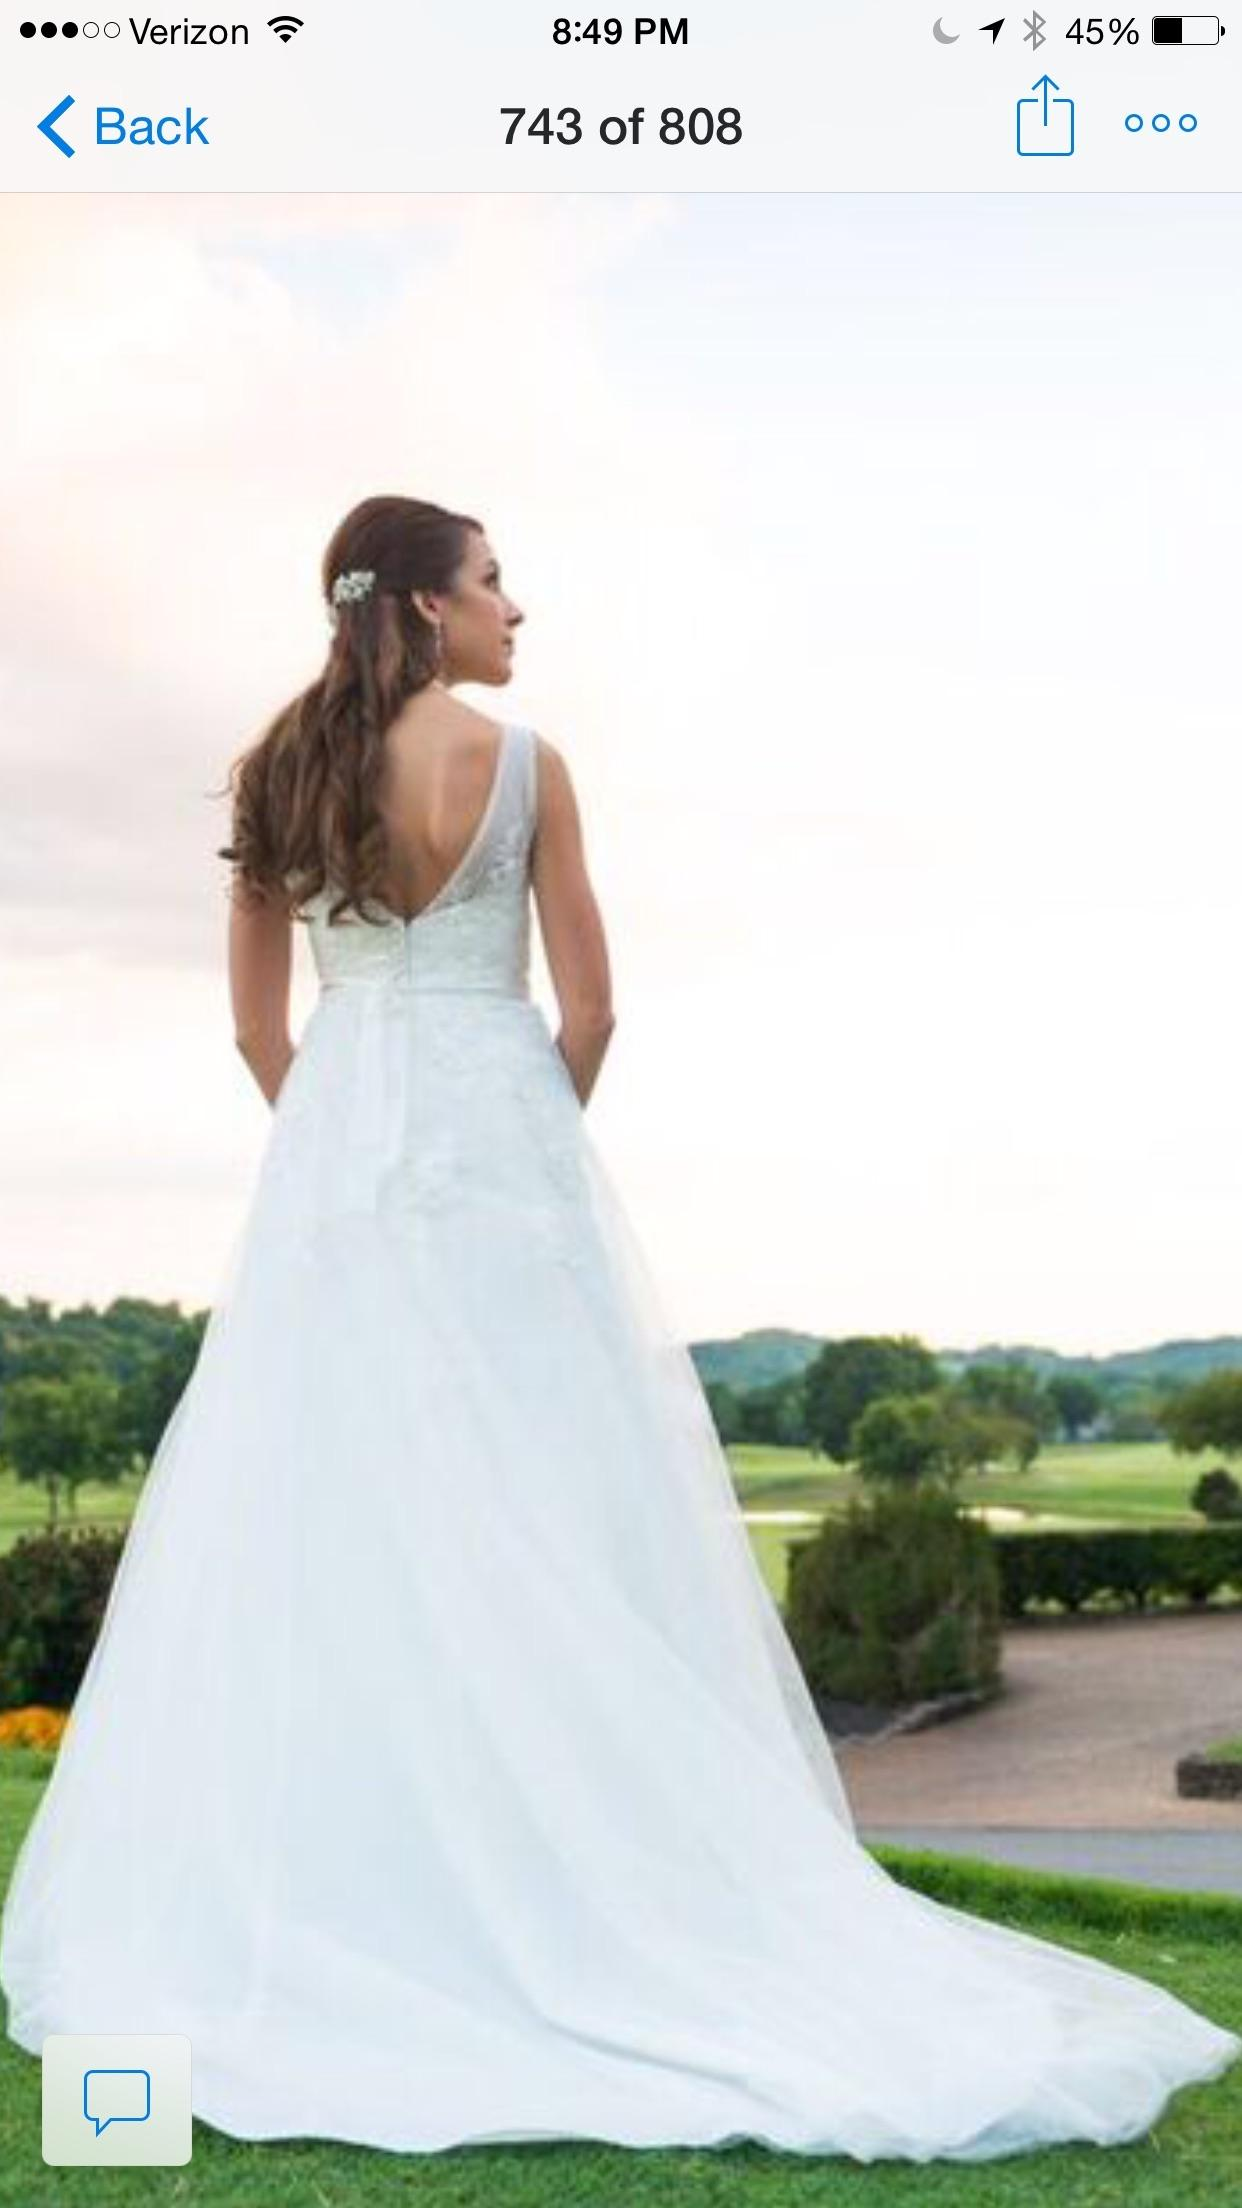 David s Bridal Per Ivory  But In My Opinion It s More Of A White     David s Bridal Per Ivory  But In My Opinion It s More Of A White  Lace  Applique A line Tulle Gown with Floral Style Wg3712 Modern Wedding Dress